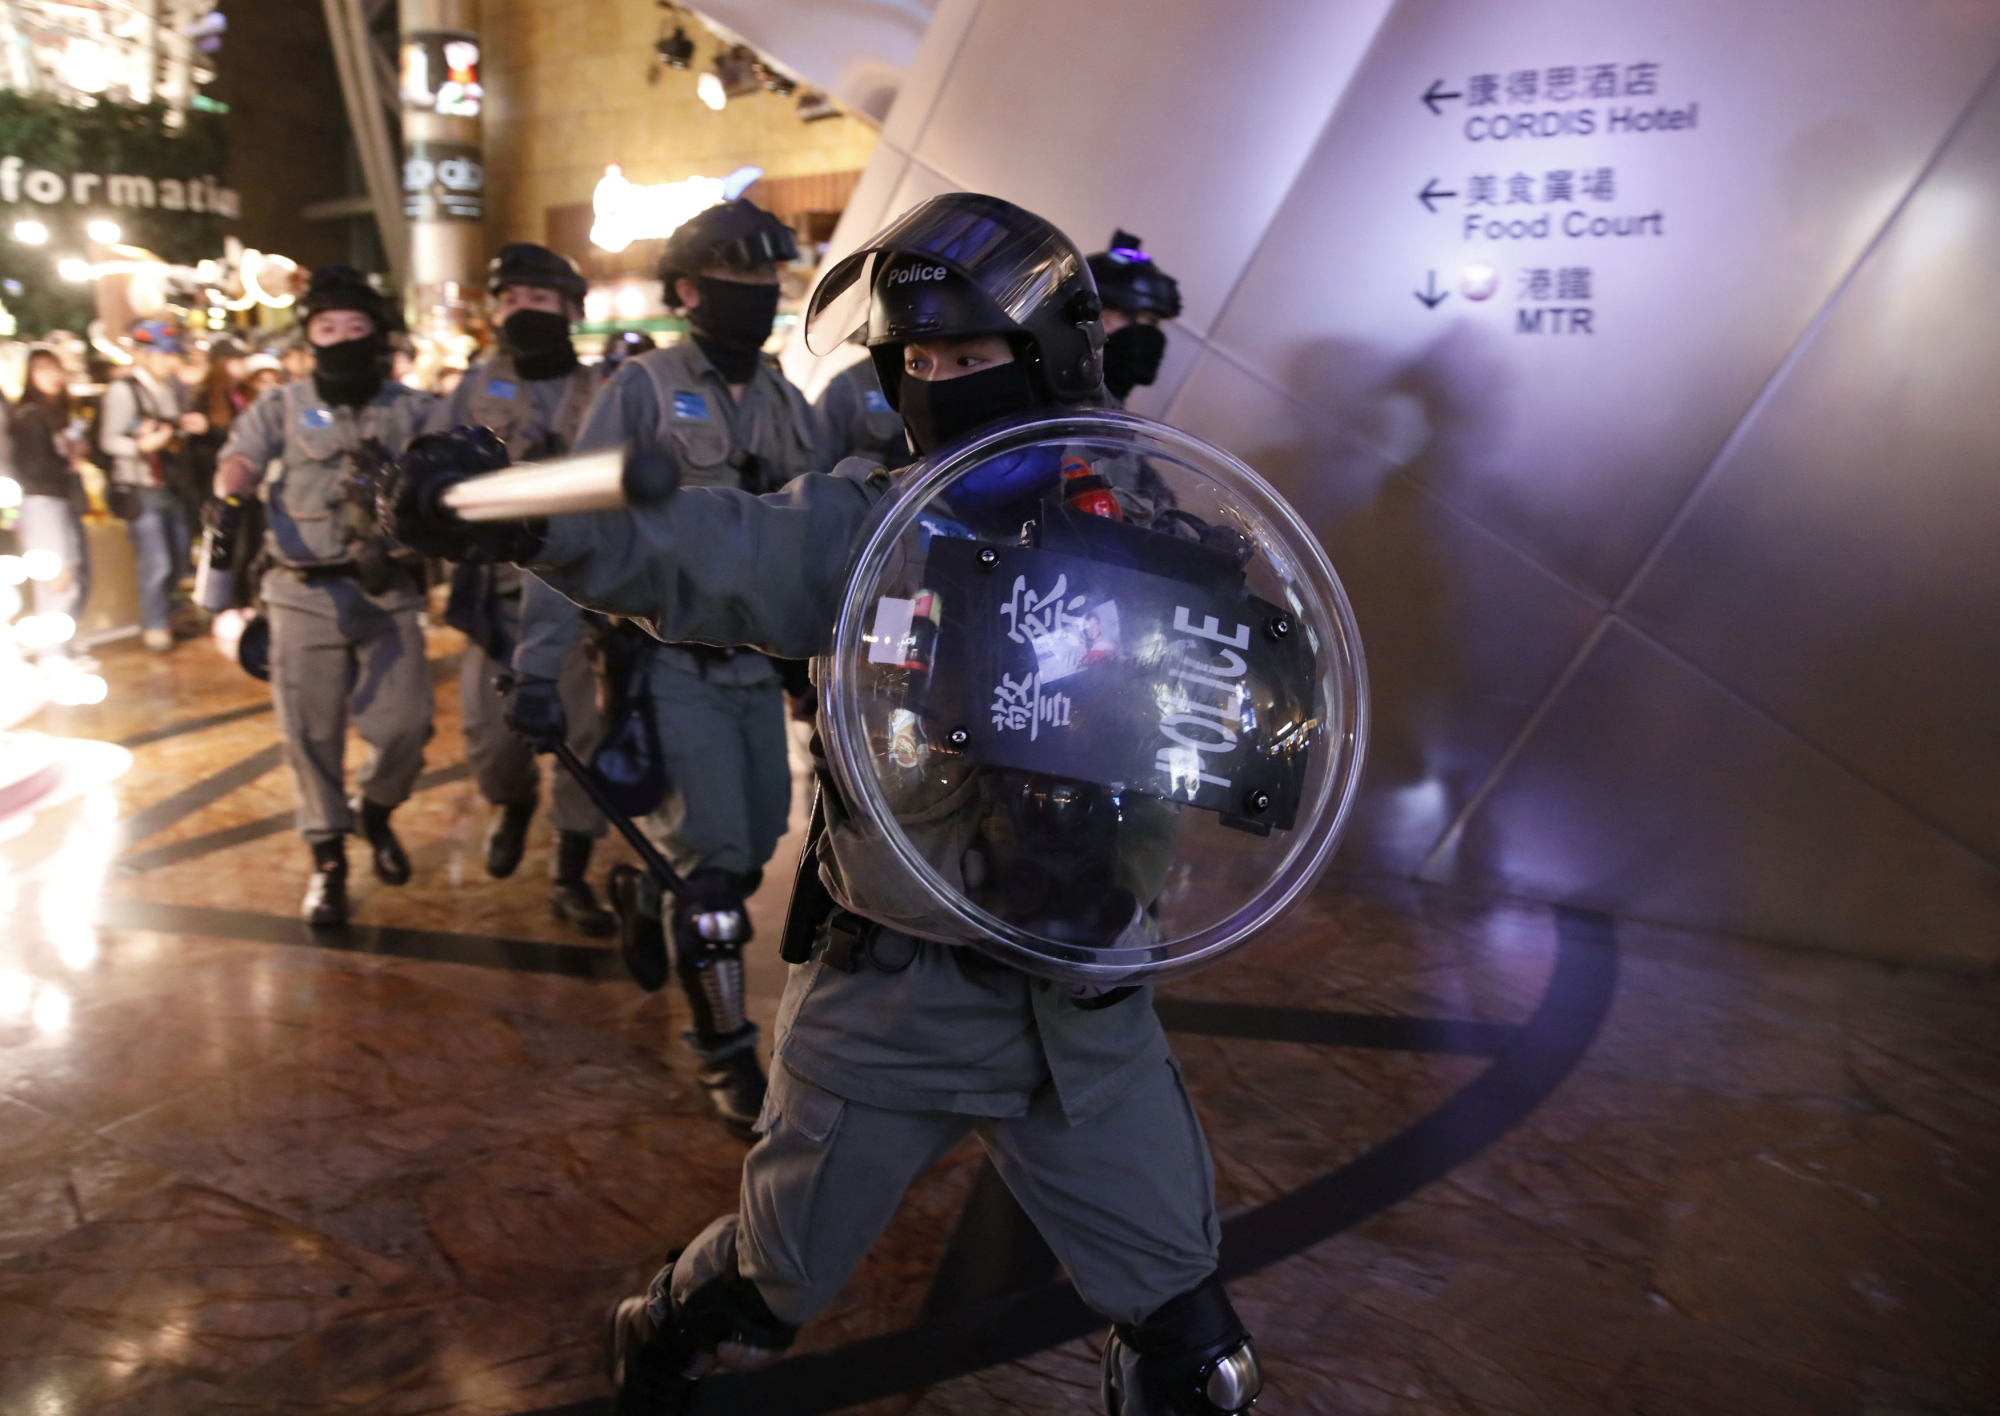 Riot police hold back anti-government protesters at a shopping mall in Hong Kong on Thursday.   REUTERS